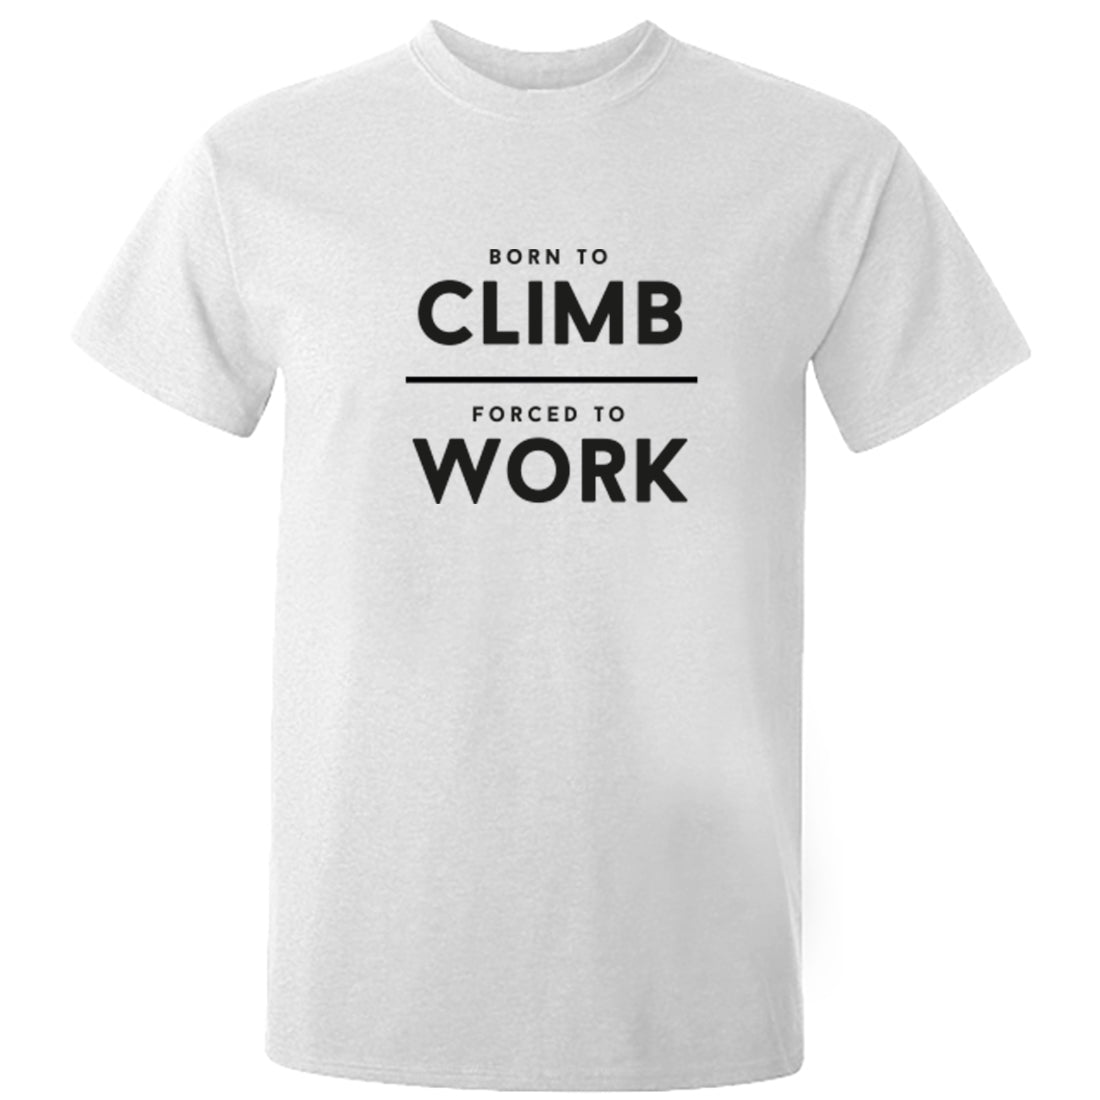 Born To Climb Forced To Work Unisex Fit T-Shirt K2026 - Illustrated Identity Ltd.